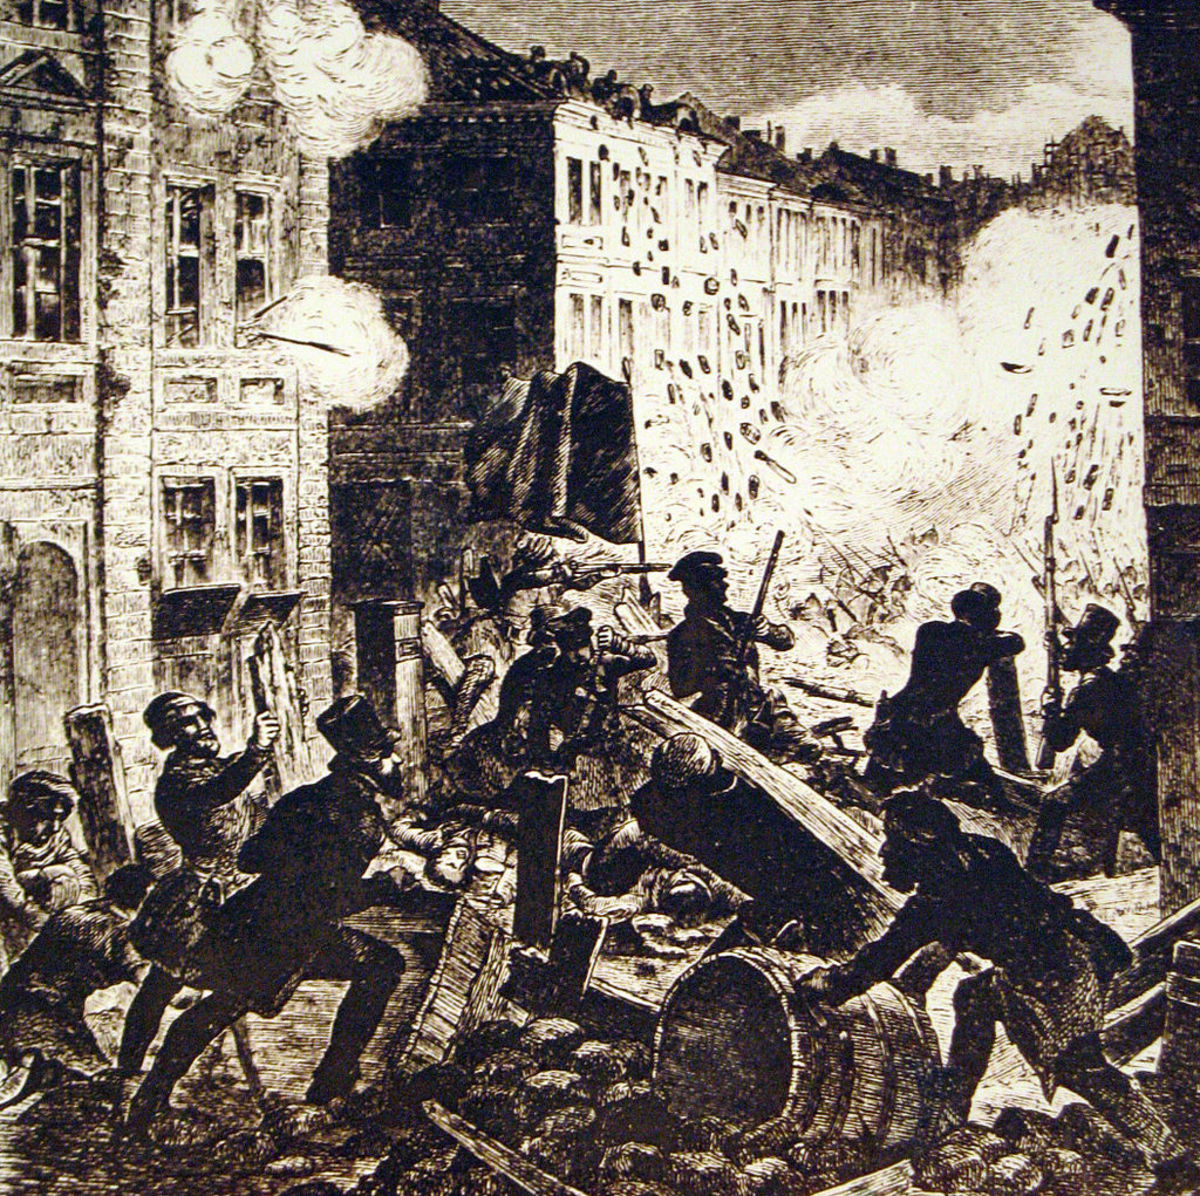 Riots in the streets of St. Louis by supporters of Governor Jackson's pro-Southern supporters.